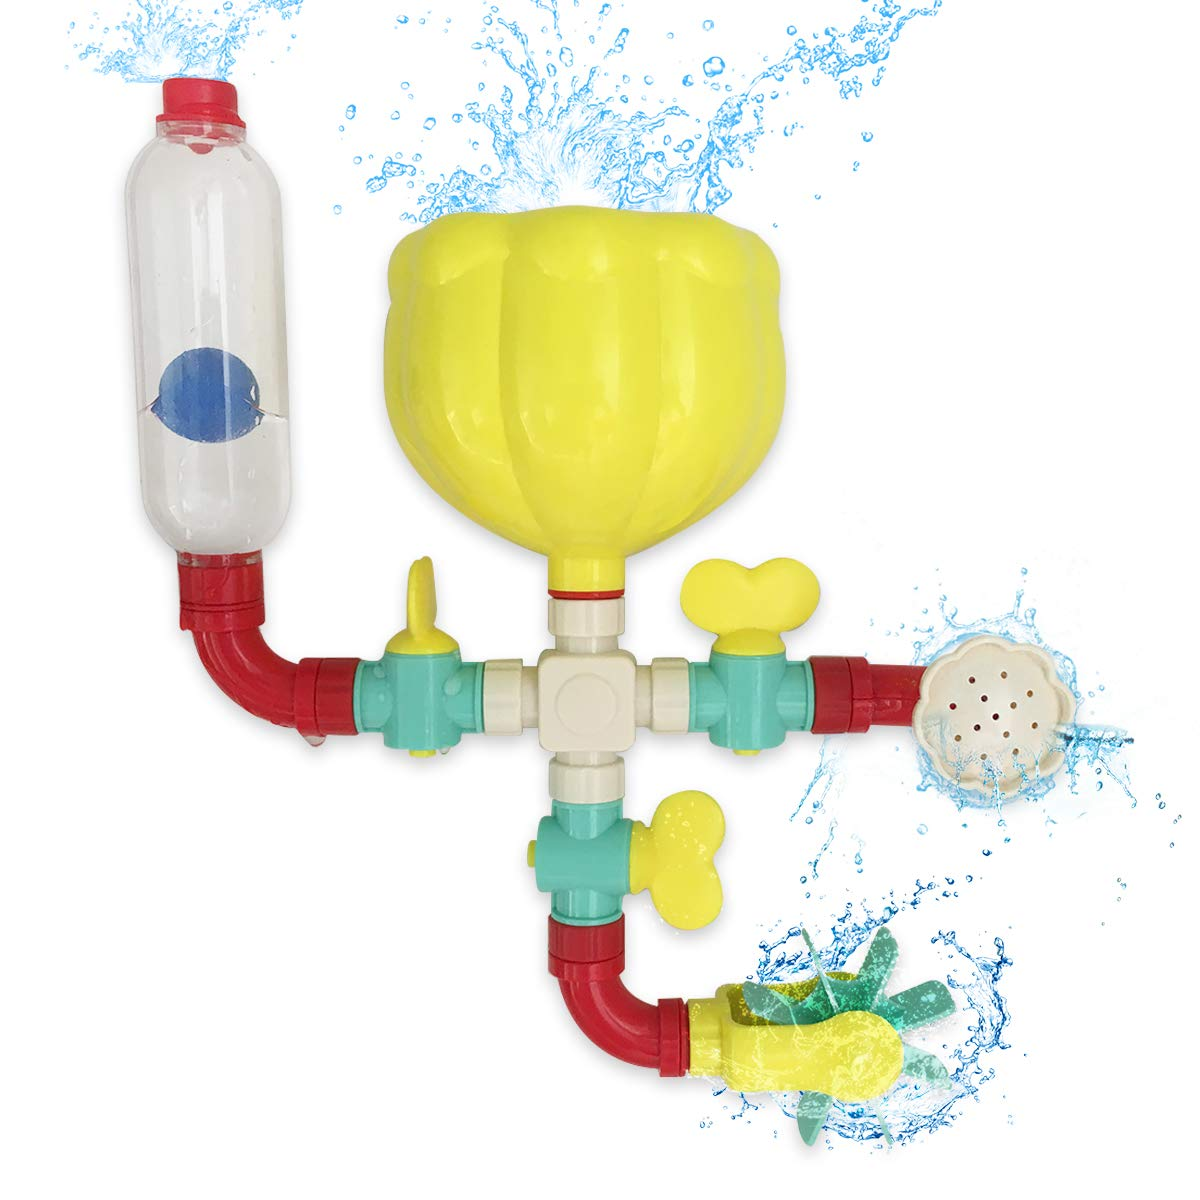 Lydaz Pipe Bath Toys with Fun Widgets - Educational Bathtub Water Toy for Age 1 2 3 Years Old Baby Kids Toddlers - Multiple Ways to Play